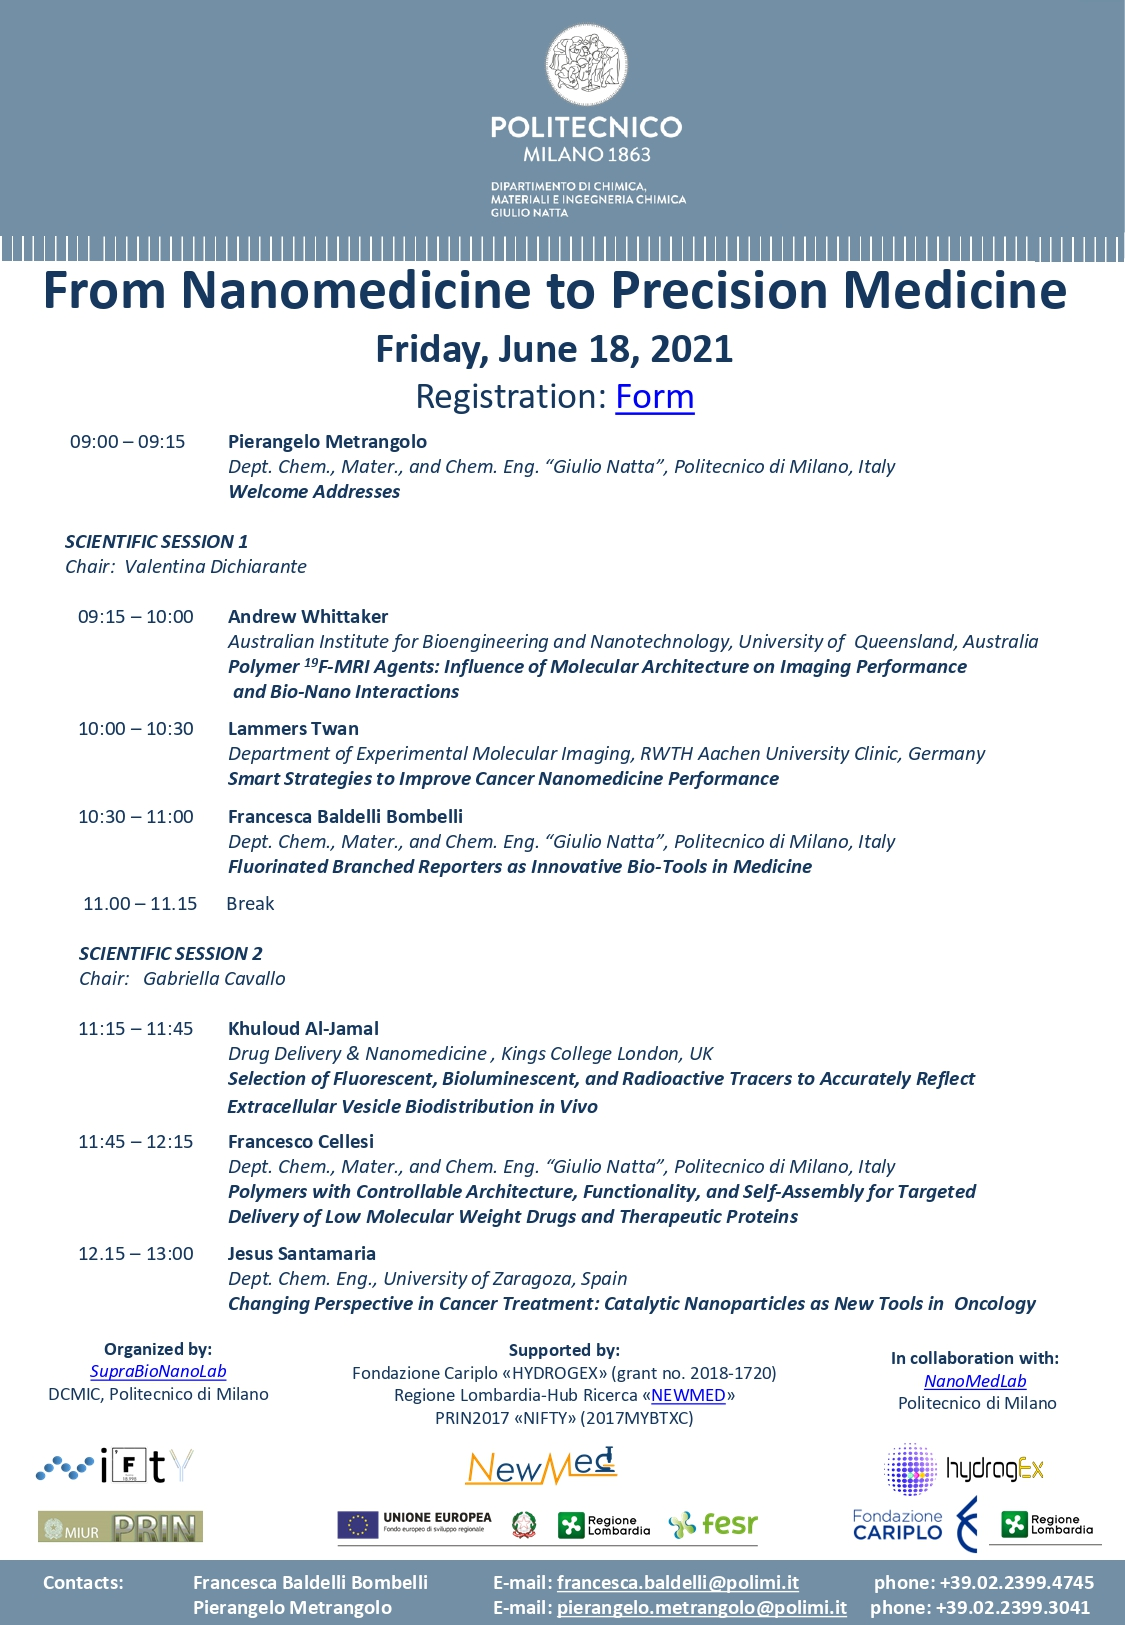 Talk by J. Santamaría: Changing Perspective in Cancer Treatment: Catalytic Nanoparticles as New Tools in Oncology